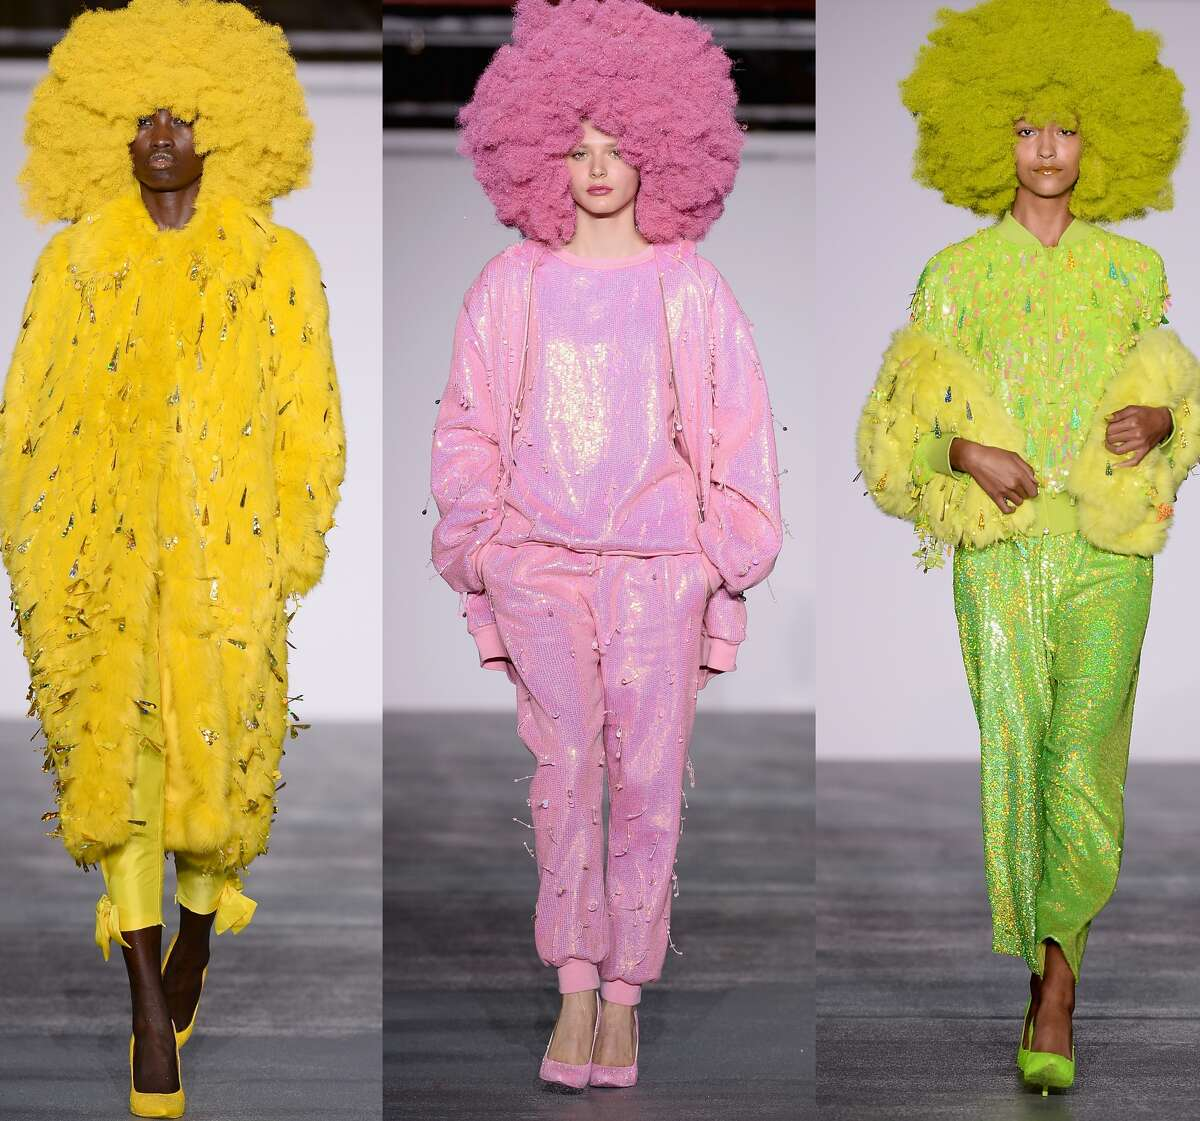 As London Fashion Week wrapped up on Tuesday, we couldn't help but think fashion gets a bit more imaginative across the pond. Take a look and tell us if you agree. We'd like to be invited next time someone has a glorious color-coordinated afro pajama party. (Ashish)